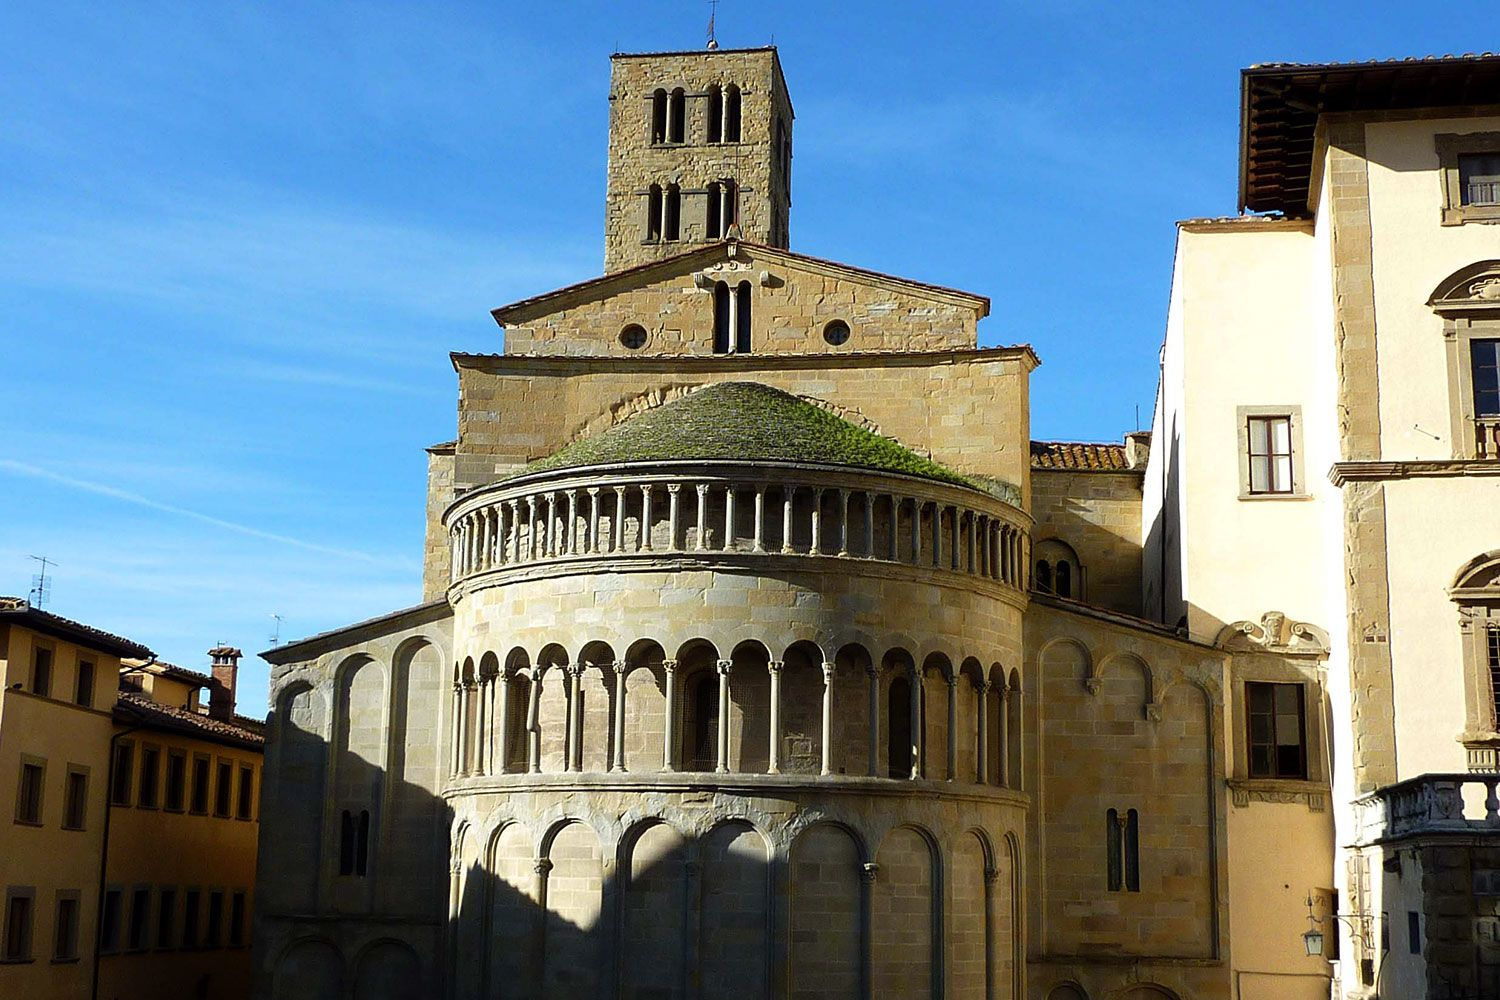 Behind the Pieve of St. Maria overlooking Piazza Grande in Arezzo